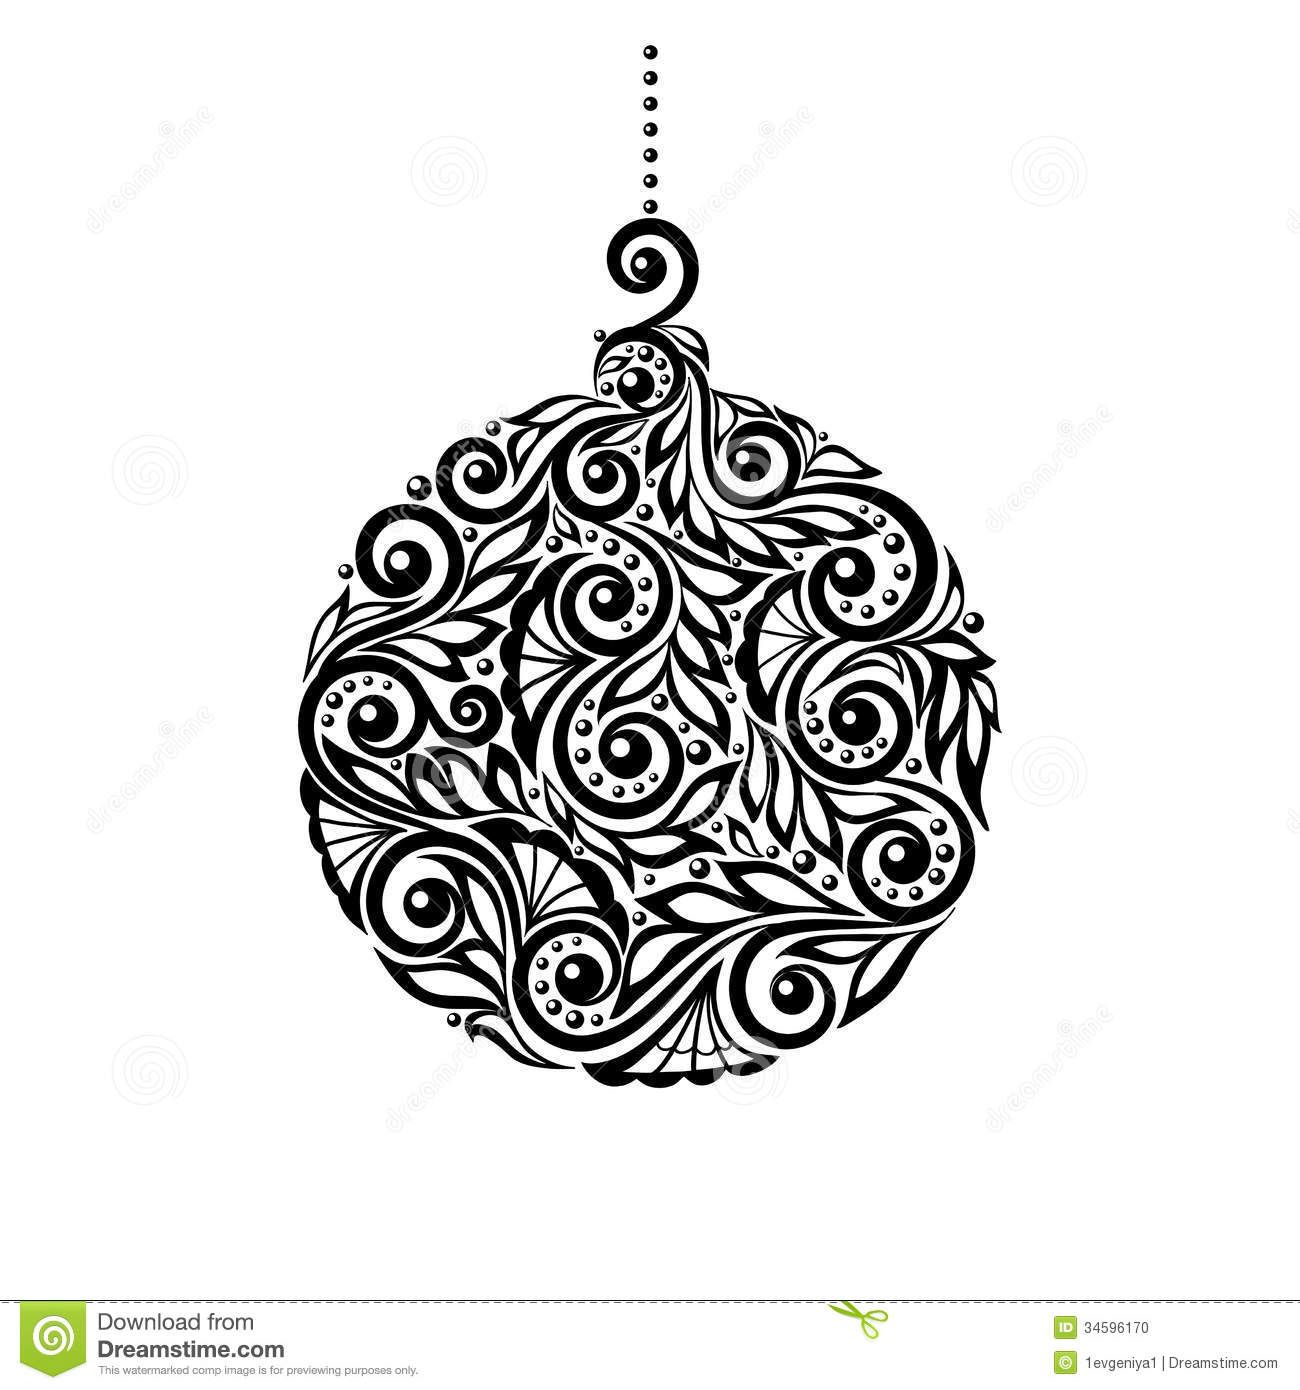 Black And White Christmas Ball With A Floral Desig  Download From